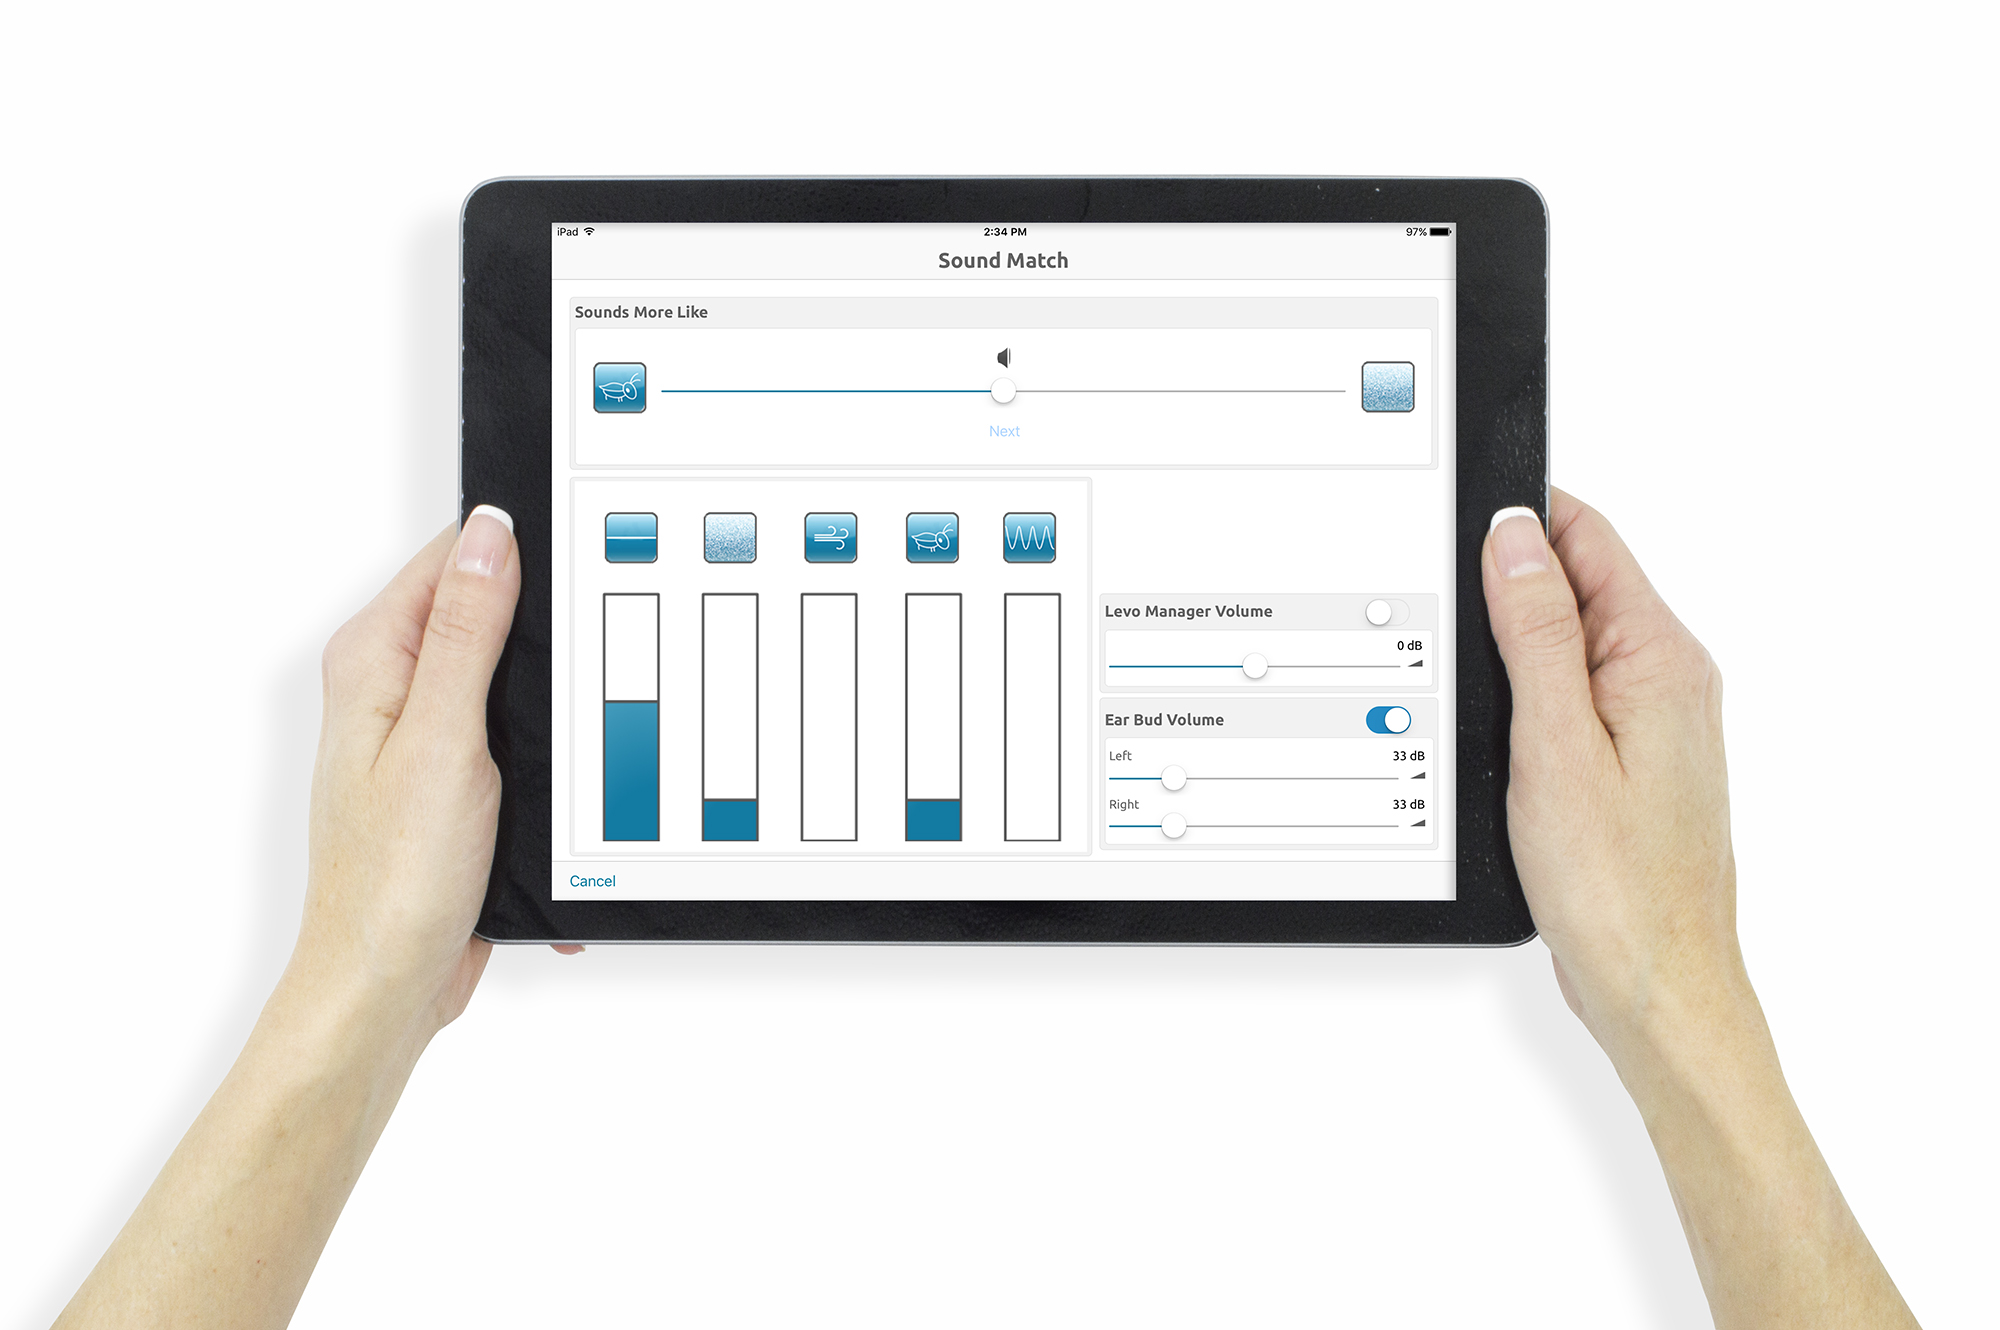 Tinnitus device Apple® iPad Air™ with Levo Manager software sound matching screen